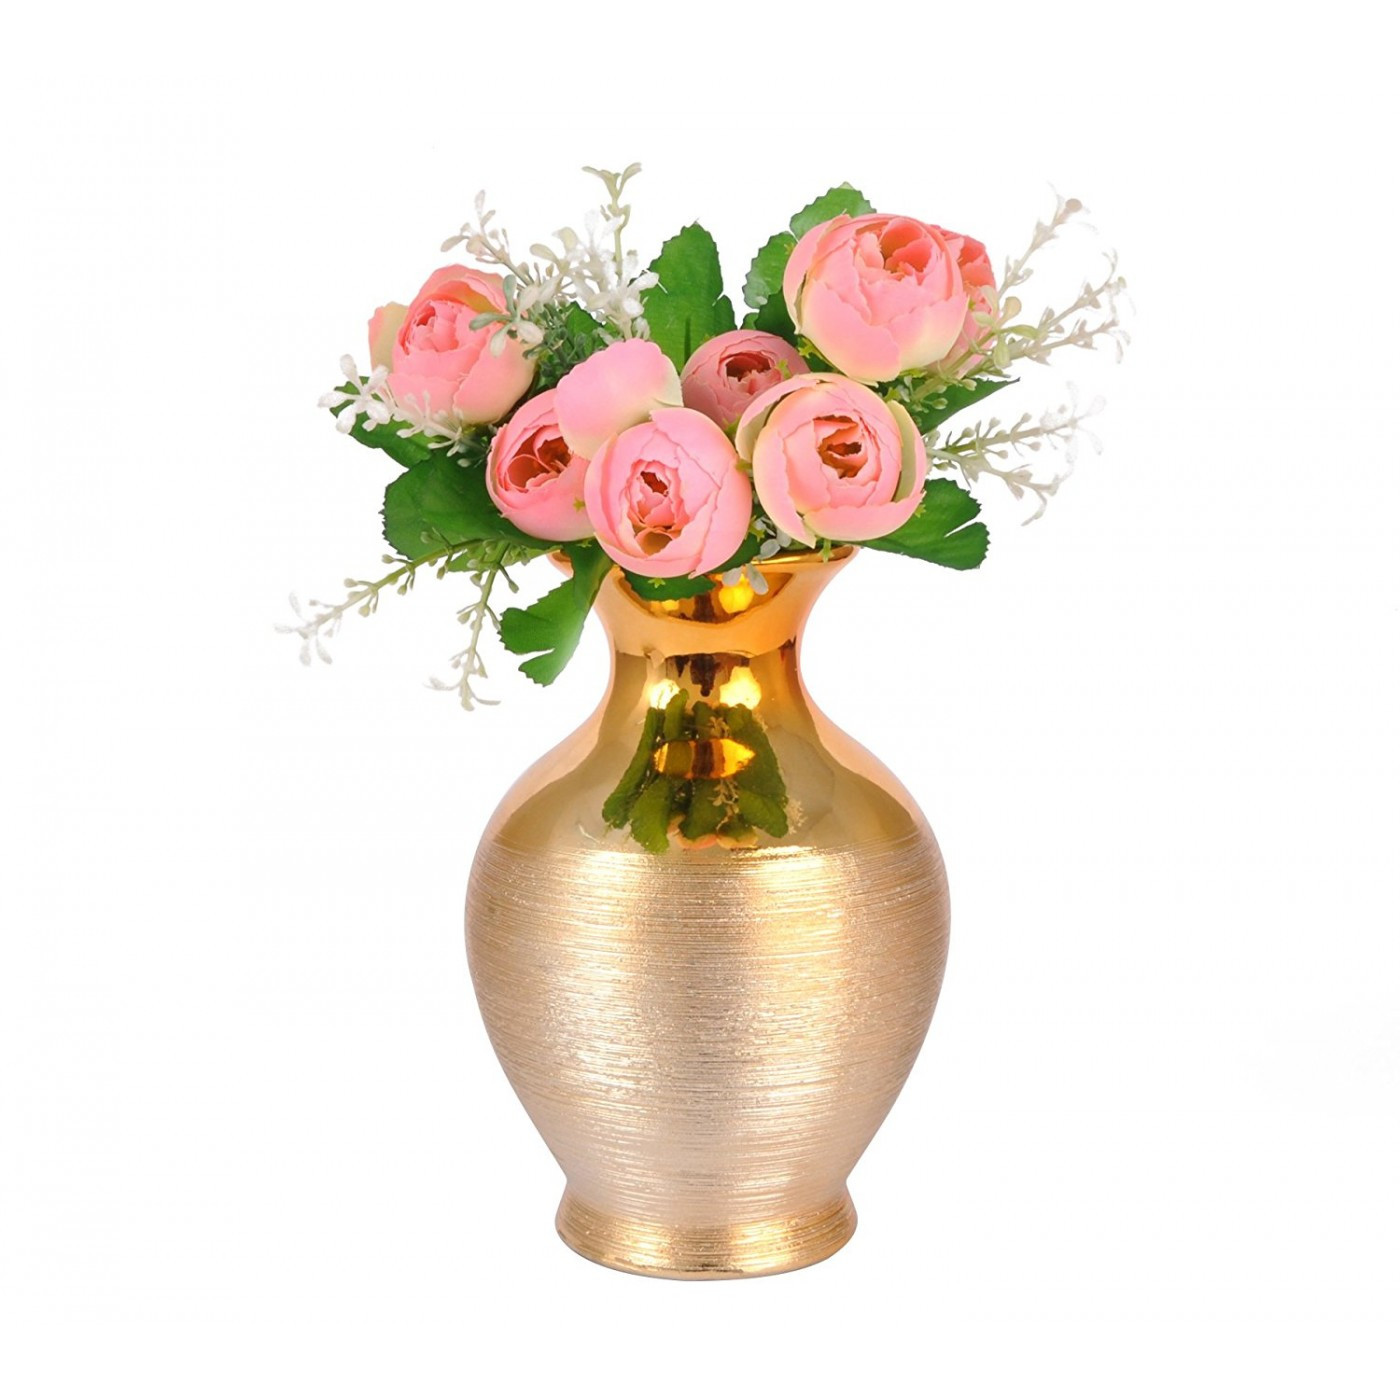 15 Trendy Artificial Peonies In Glass Vase